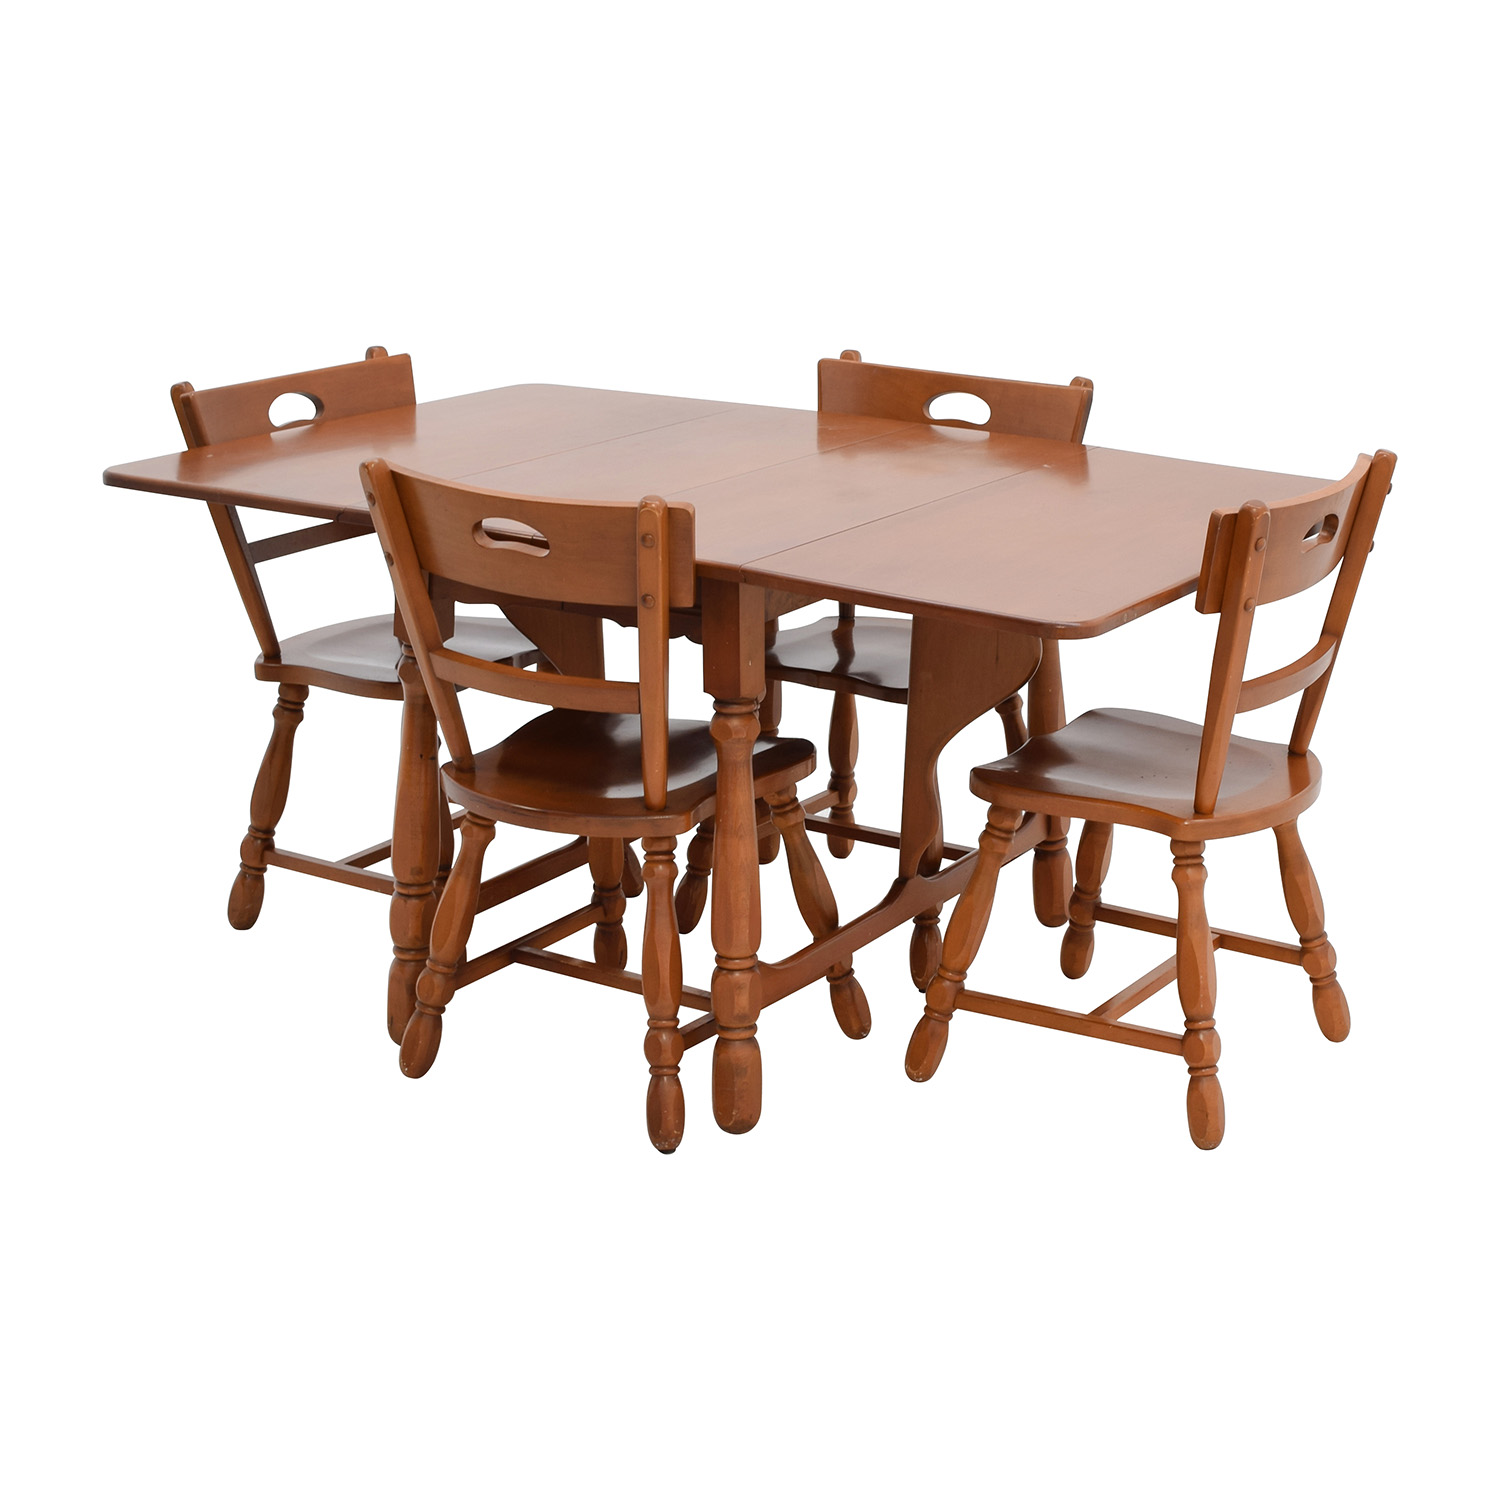 83 off maple dining table with four matching chairs tables. Black Bedroom Furniture Sets. Home Design Ideas